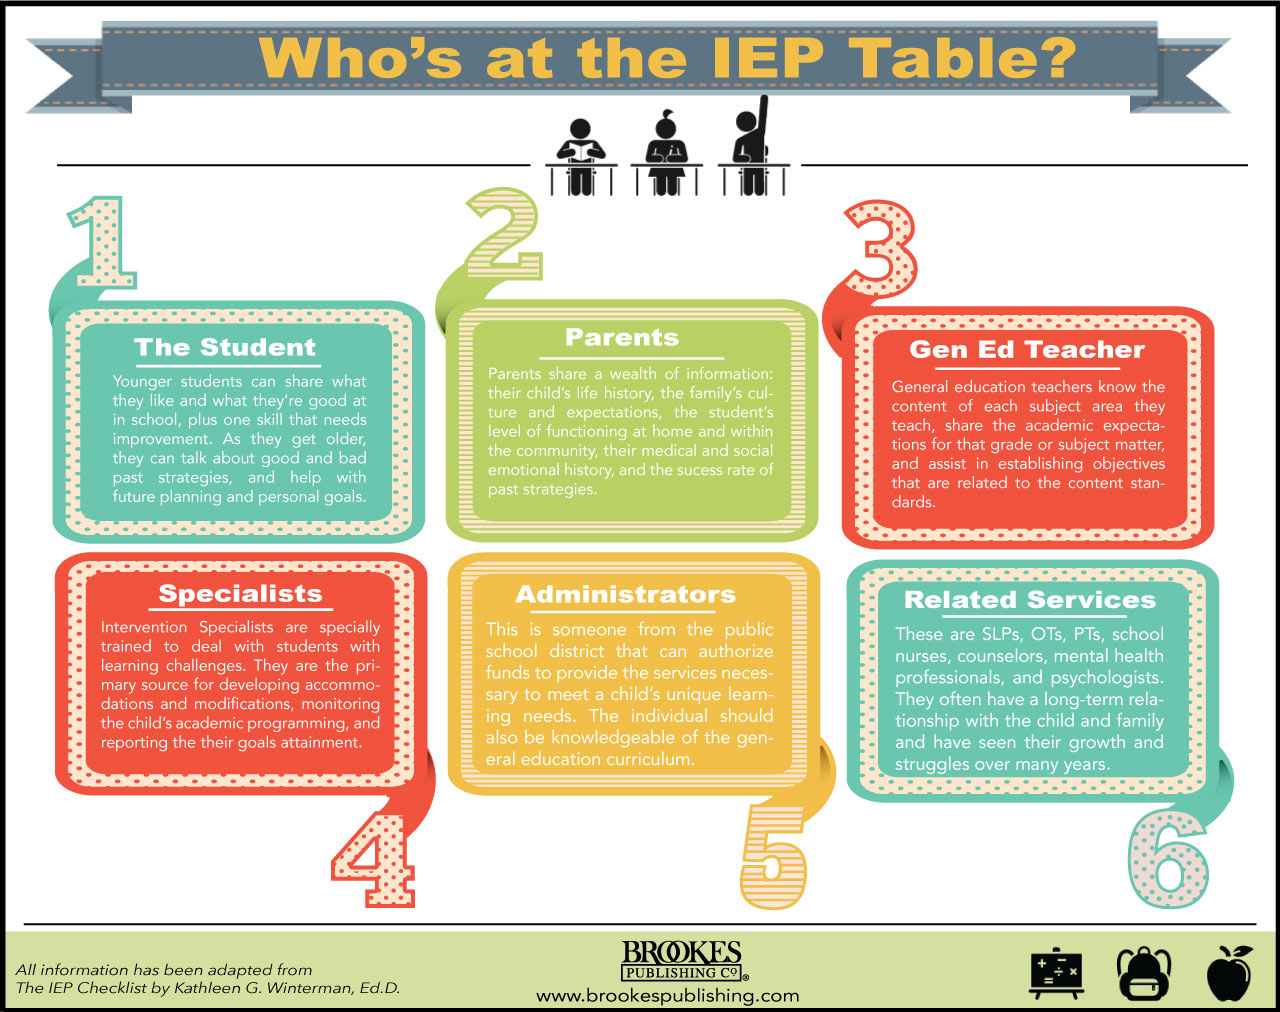 writing process of an iep Writing iep goals and objectives linda gibbons, rn, msn, il/ncsn  process and resultant iep for student health needs  utilize the list of verbs provided in writing measurable student focused objectives  write an individualized education program (iep) for a student with a health need that is.